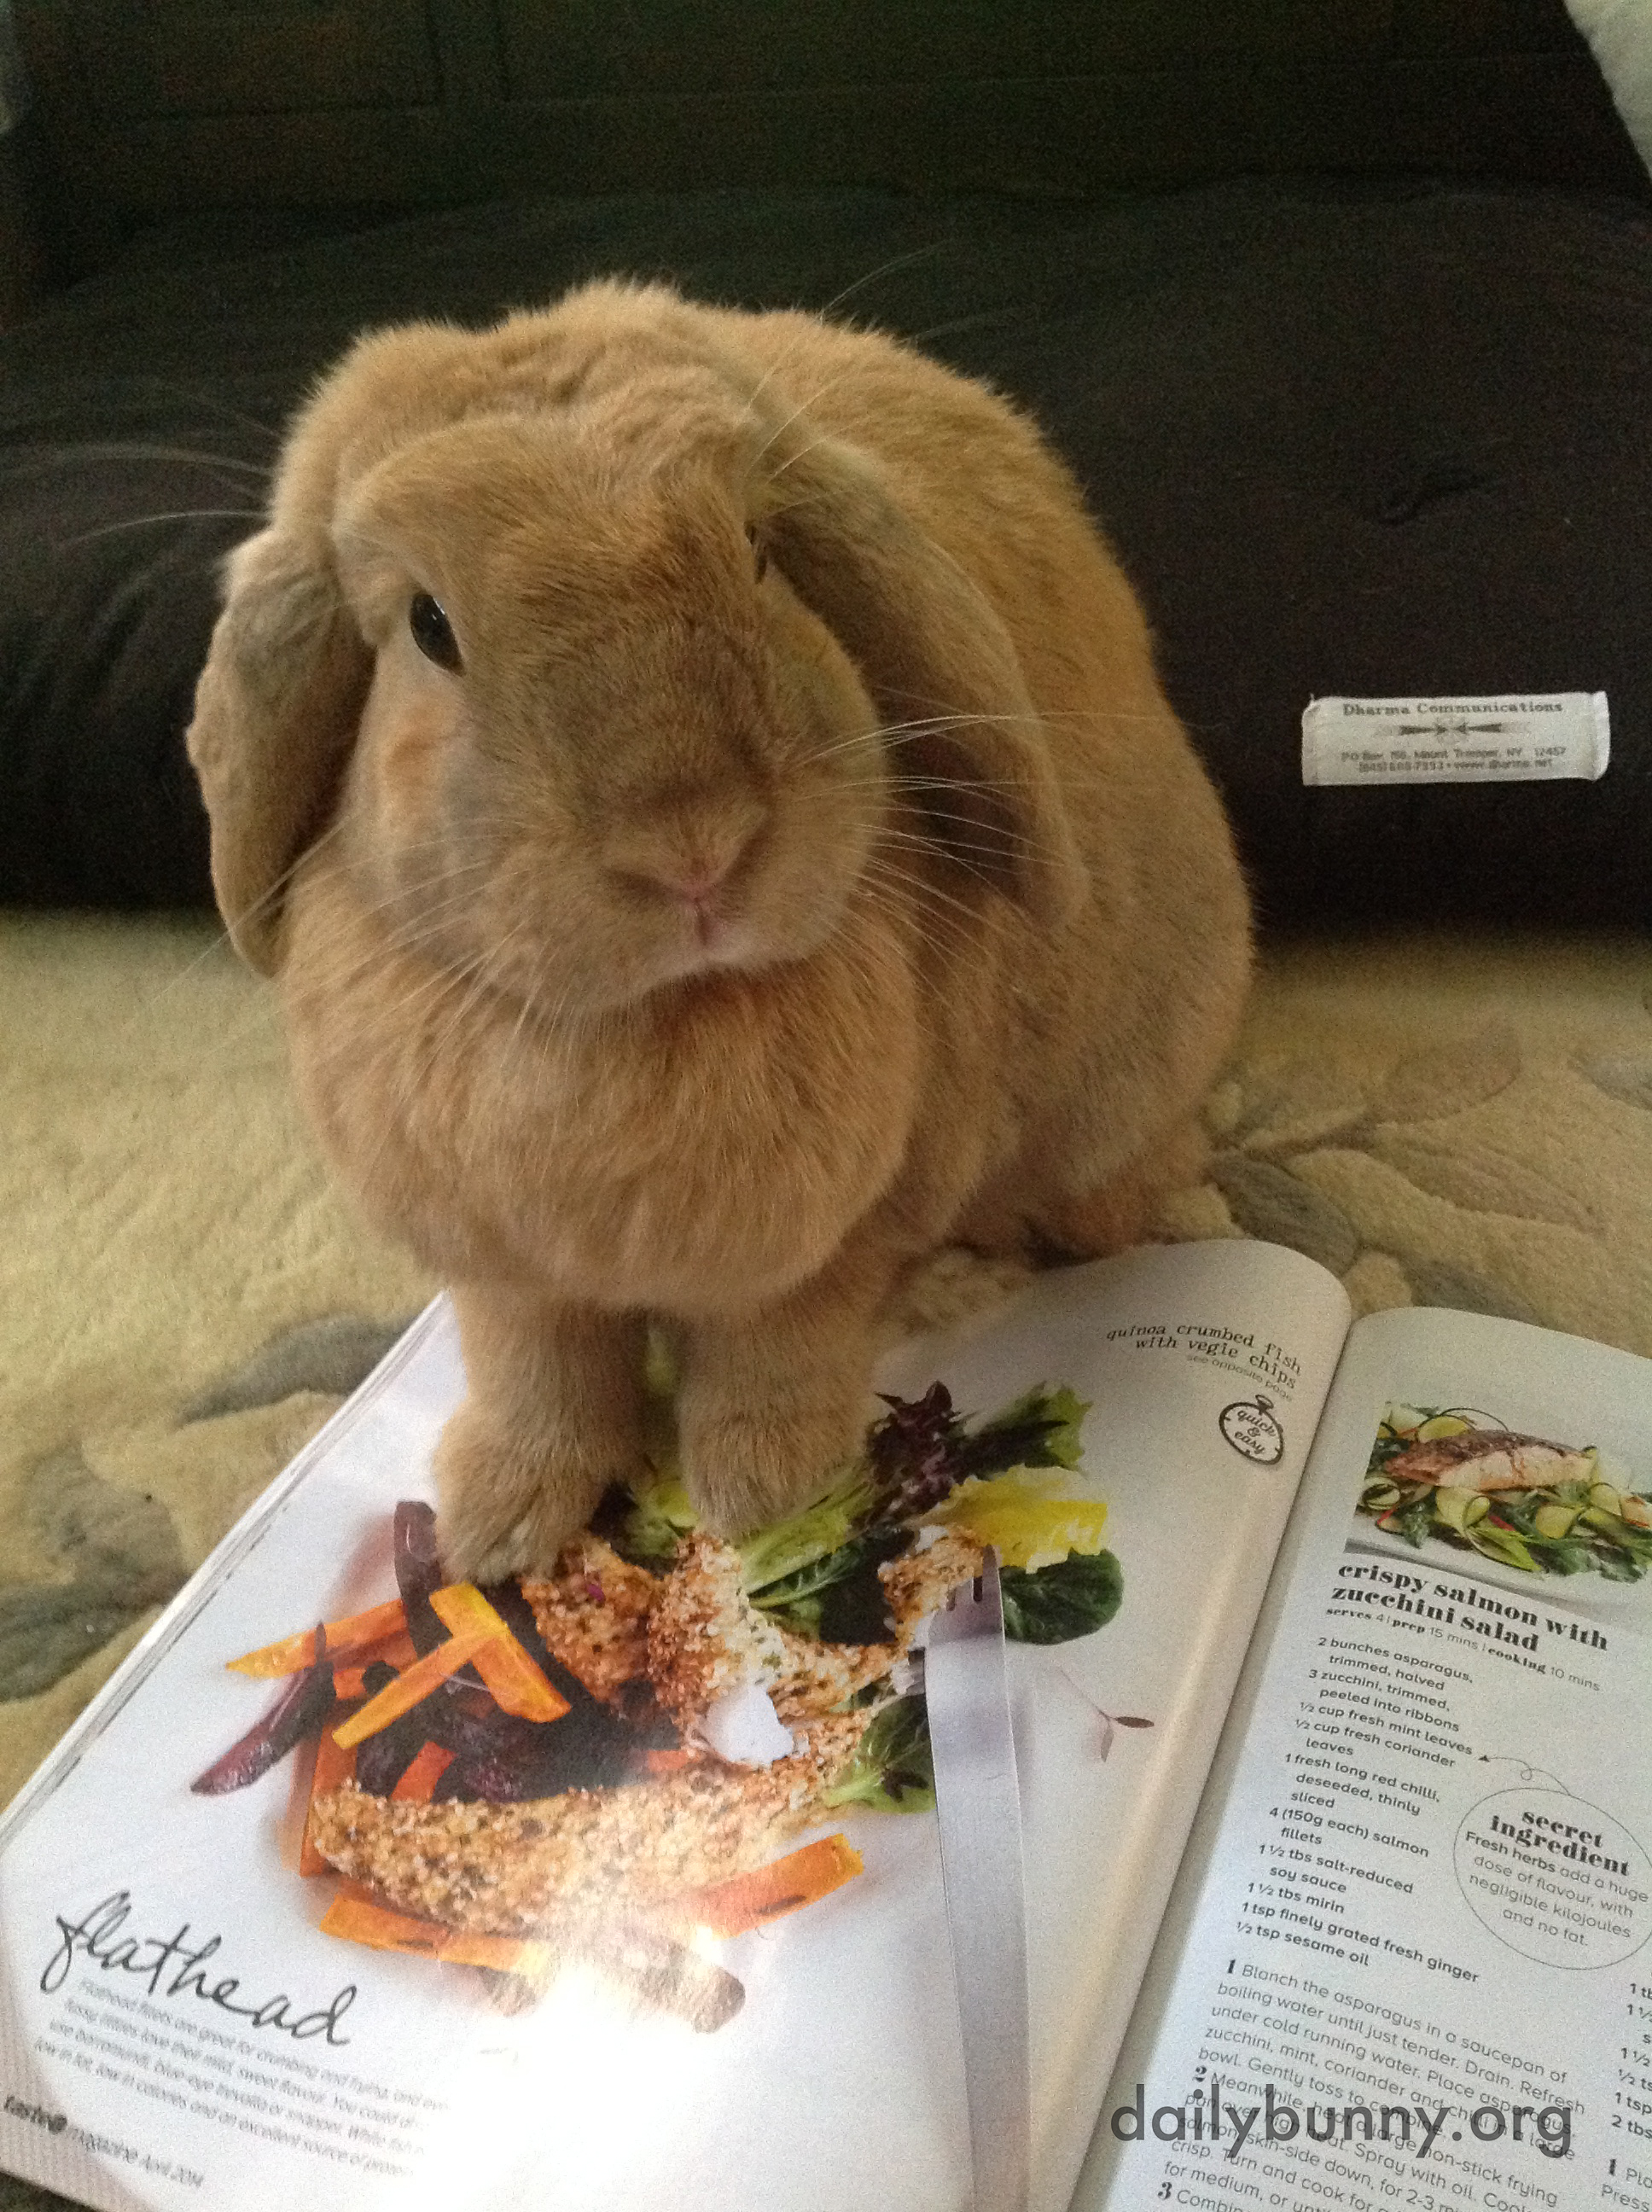 Bunny Picks Out the Salad She Wants for Dinner